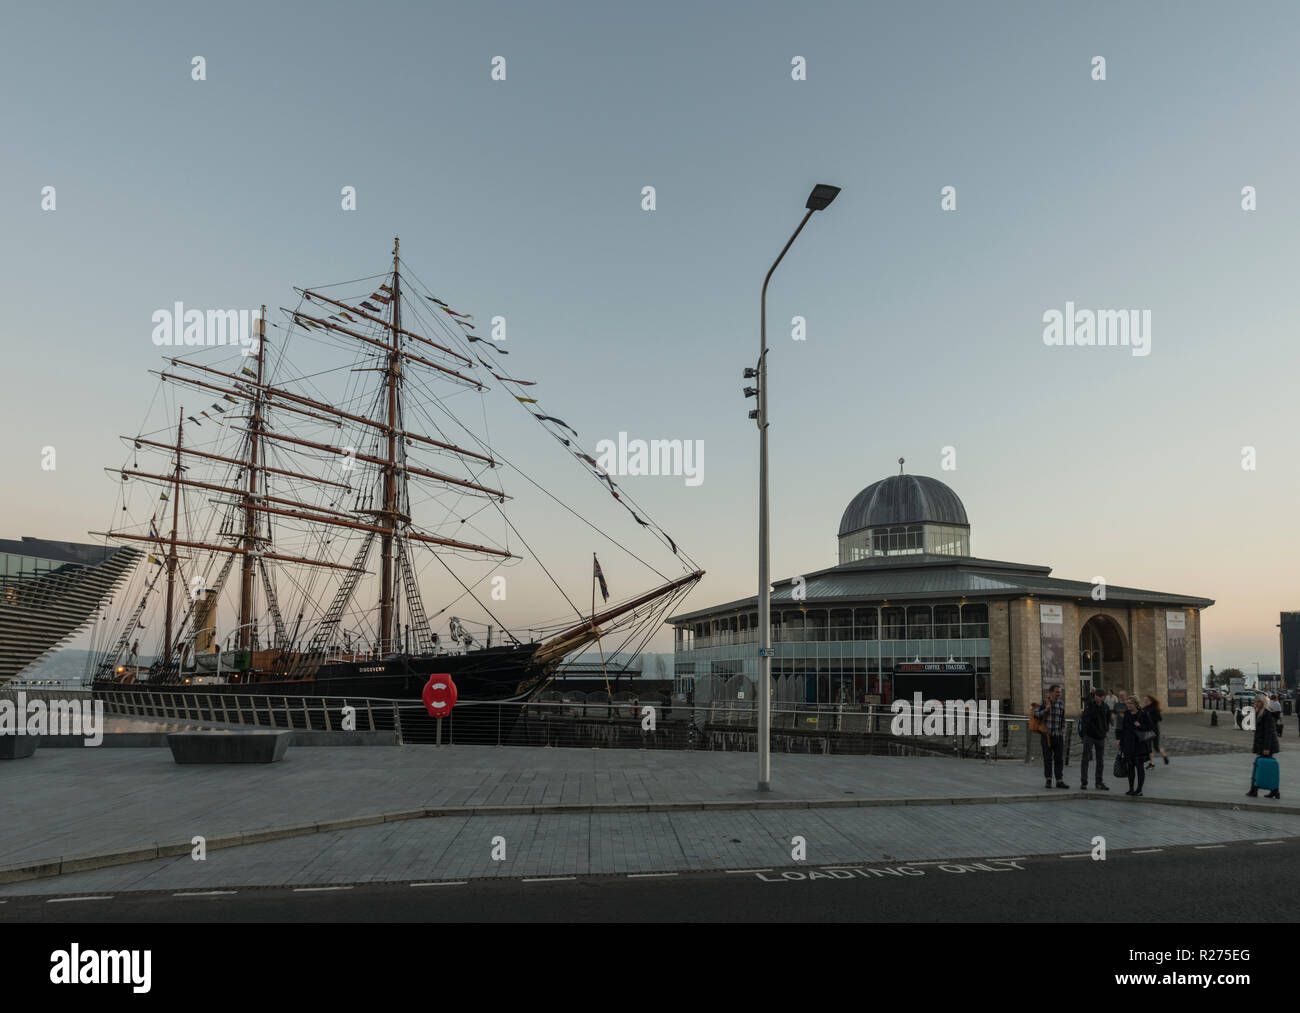 RRS Discovery, the last wooden ship built in Britain,is docked beside the V&A design museum as part of the waterfront regeneration scheme in Dundee,UK Stock Photo